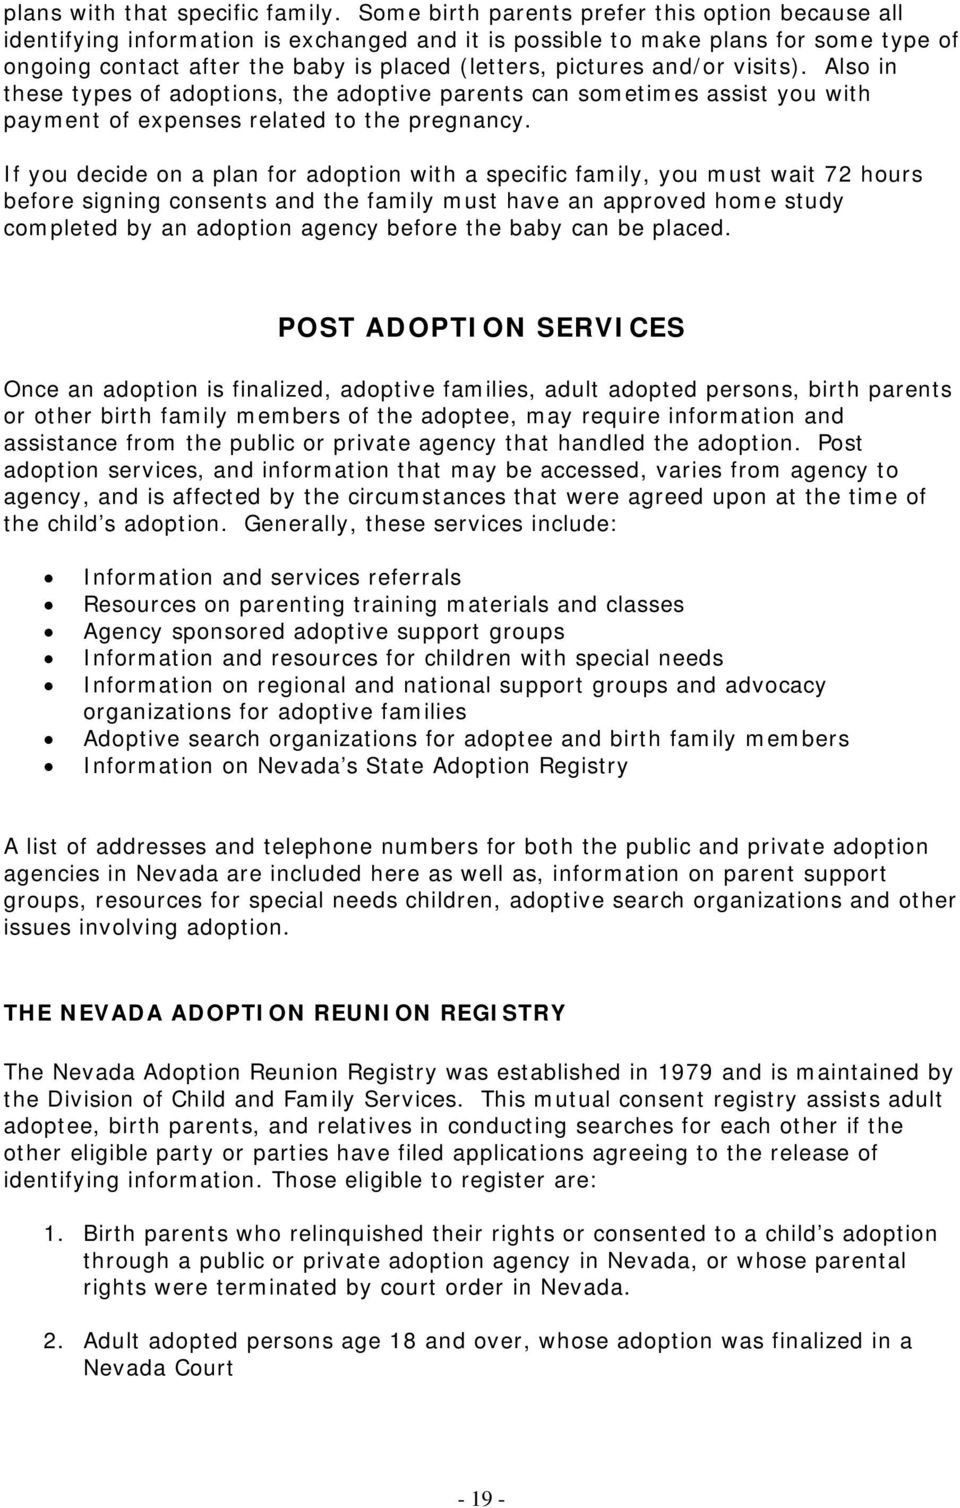 and/or visits). Also in these types of adoptions, the adoptive parents can sometimes assist you with payment of expenses related to the pregnancy.